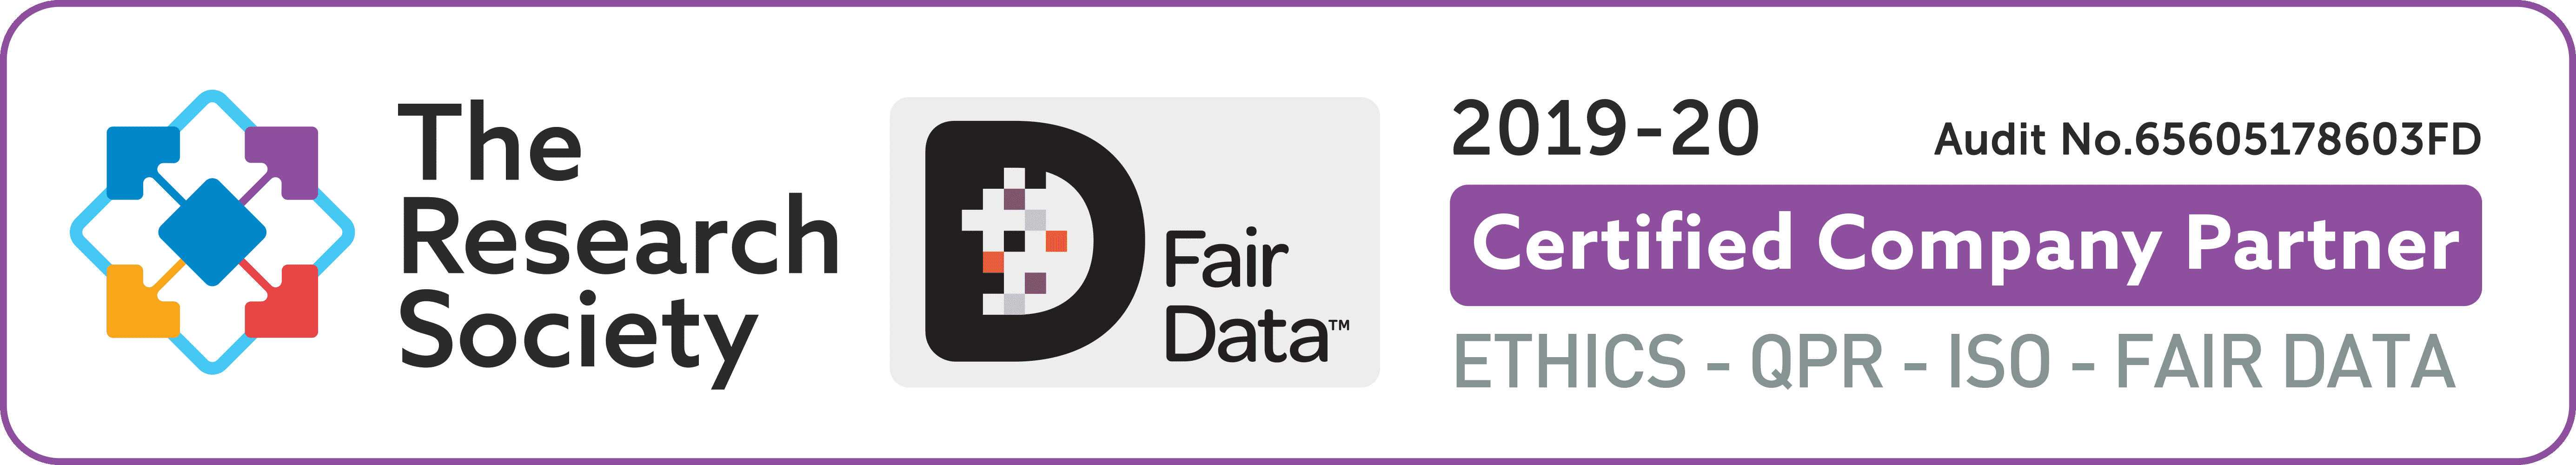 The Research Society and Fair Data - logo